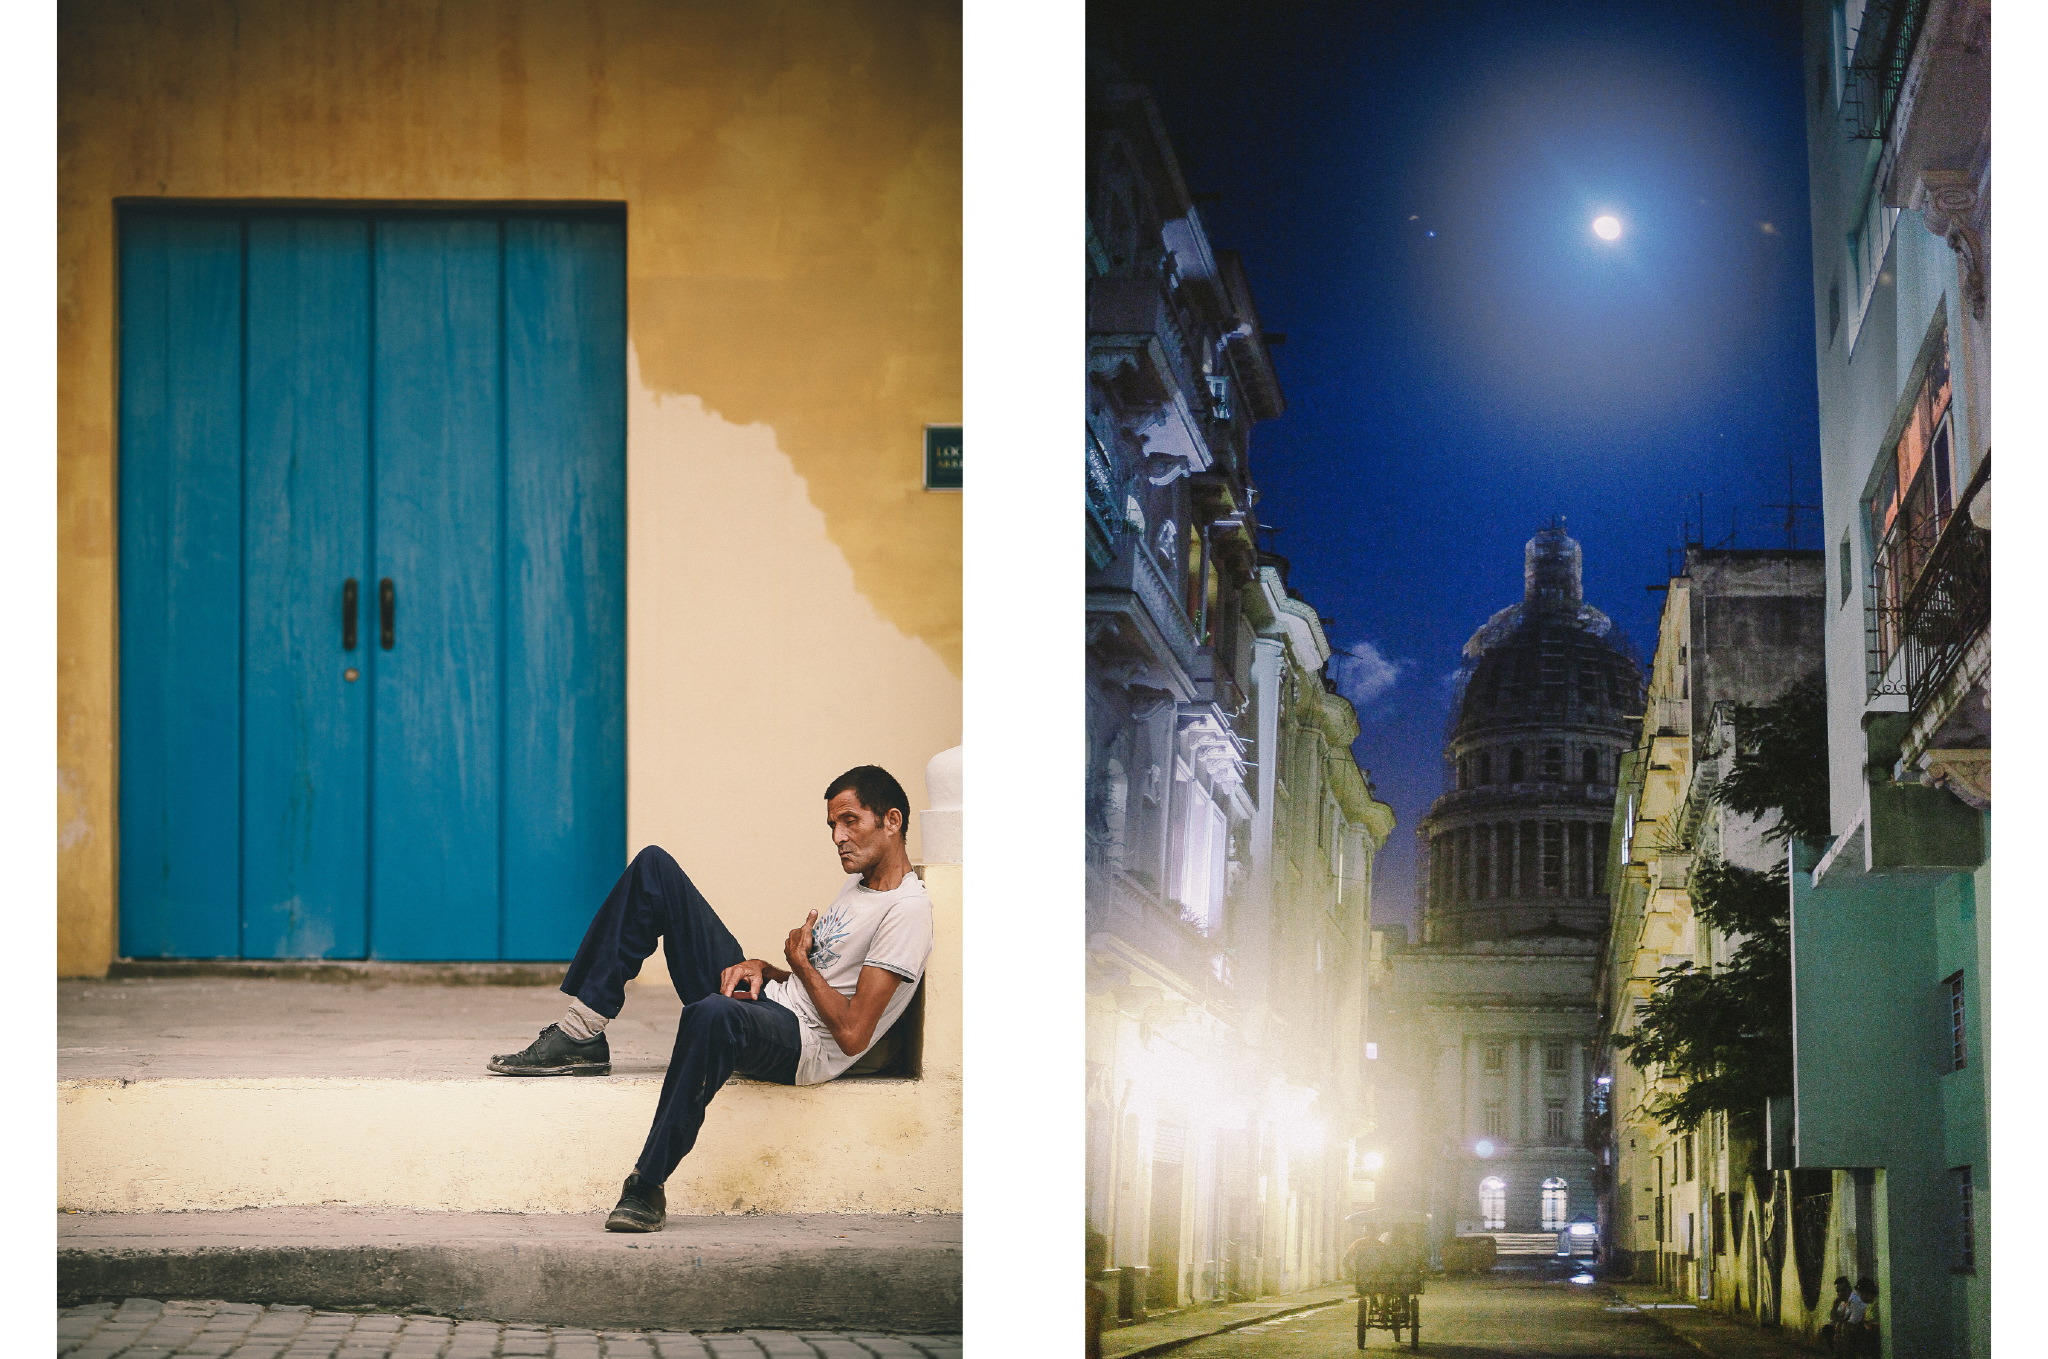 san diego wedding   photographer | collage of man in white shirt in front of building entrance   and cuban street at night